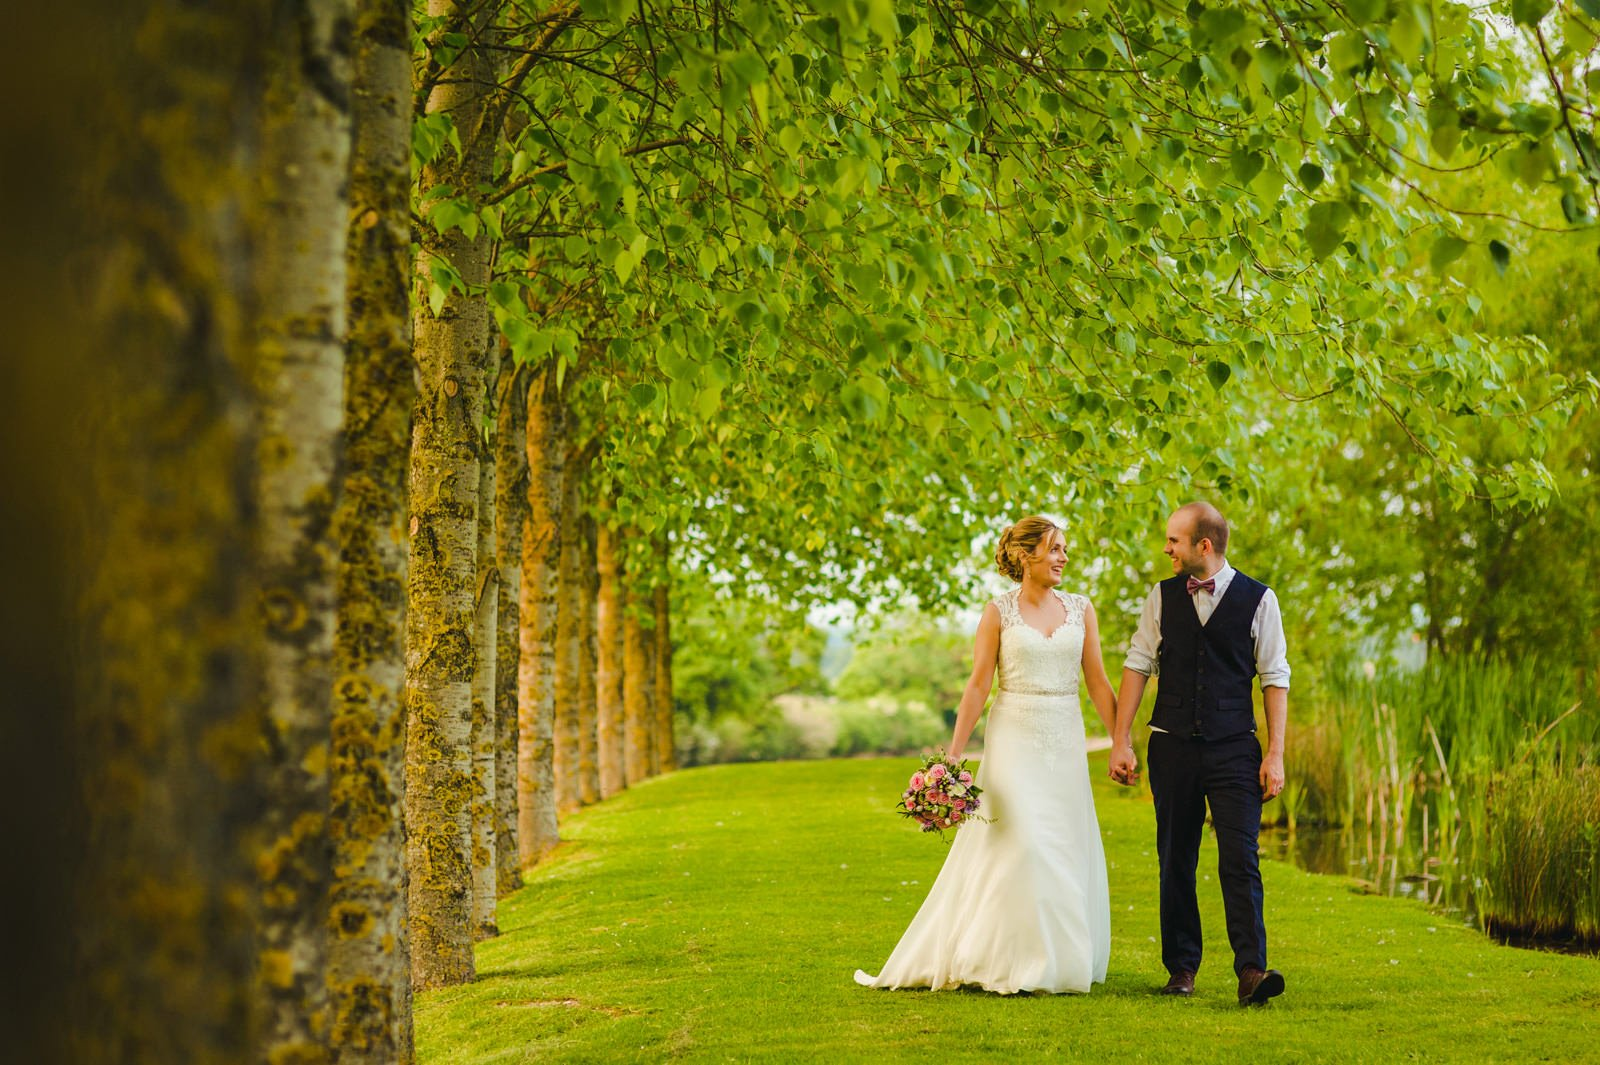 Millers Of Netley wedding, Dorrington, Shrewsbury | Emma + Ben 90